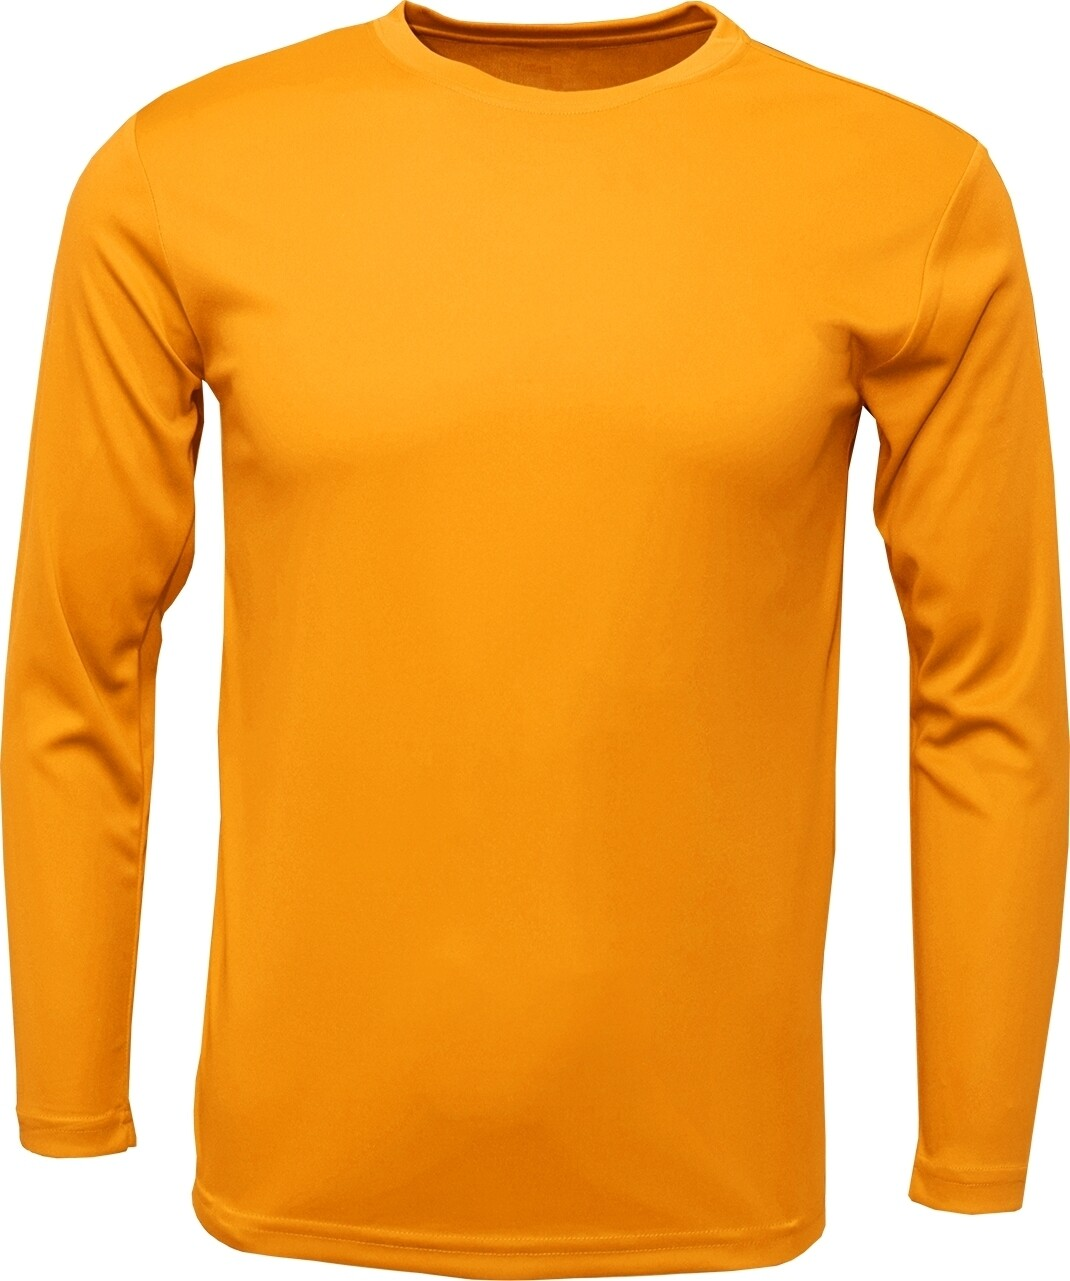 Safety Orange / Front, Back & 1 Sleeve